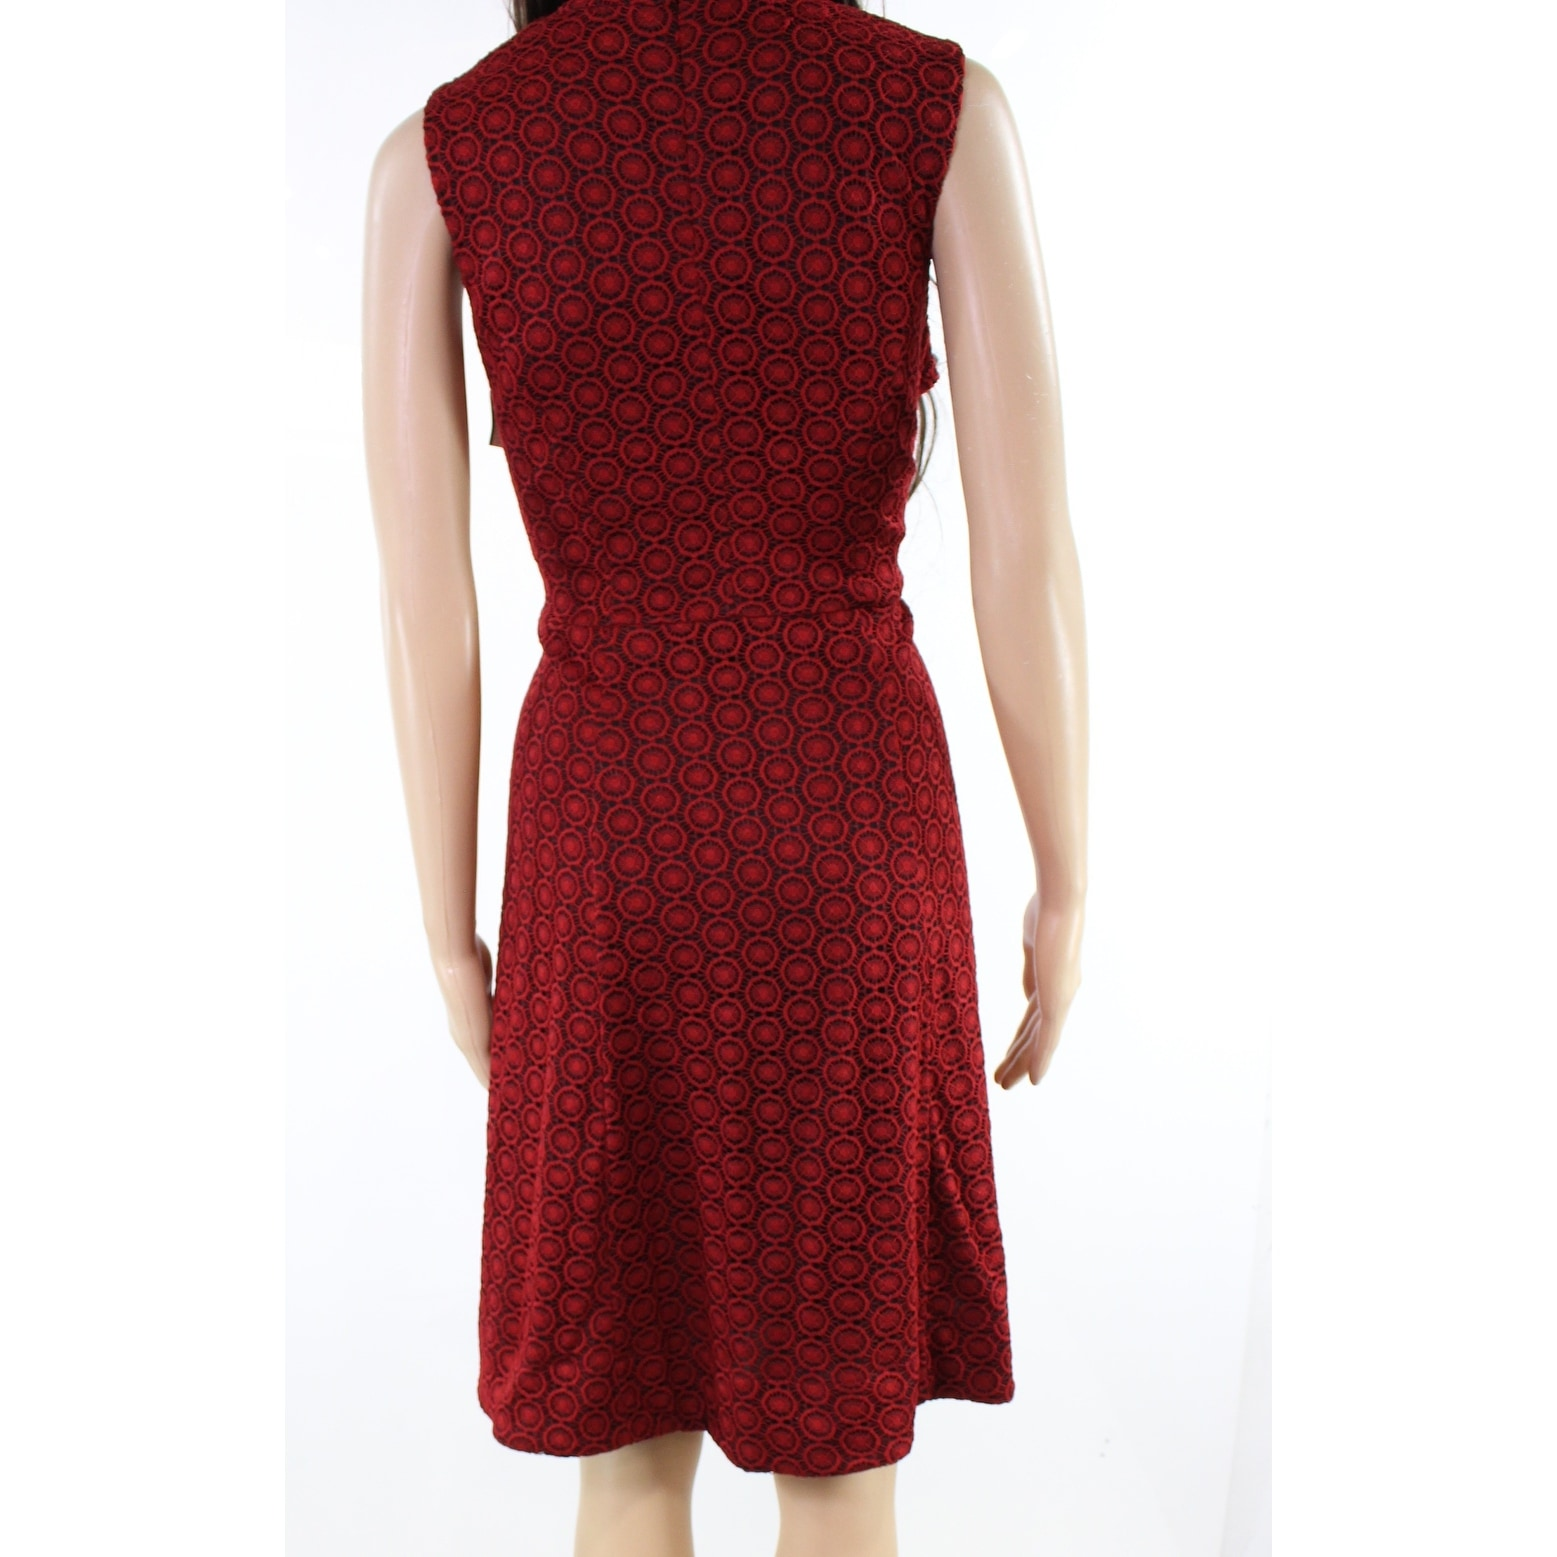 2b0b7e5cfcb6 Shop Signature By Robbie Bee Red Womens Size 12P Petite A-Line Dress ...